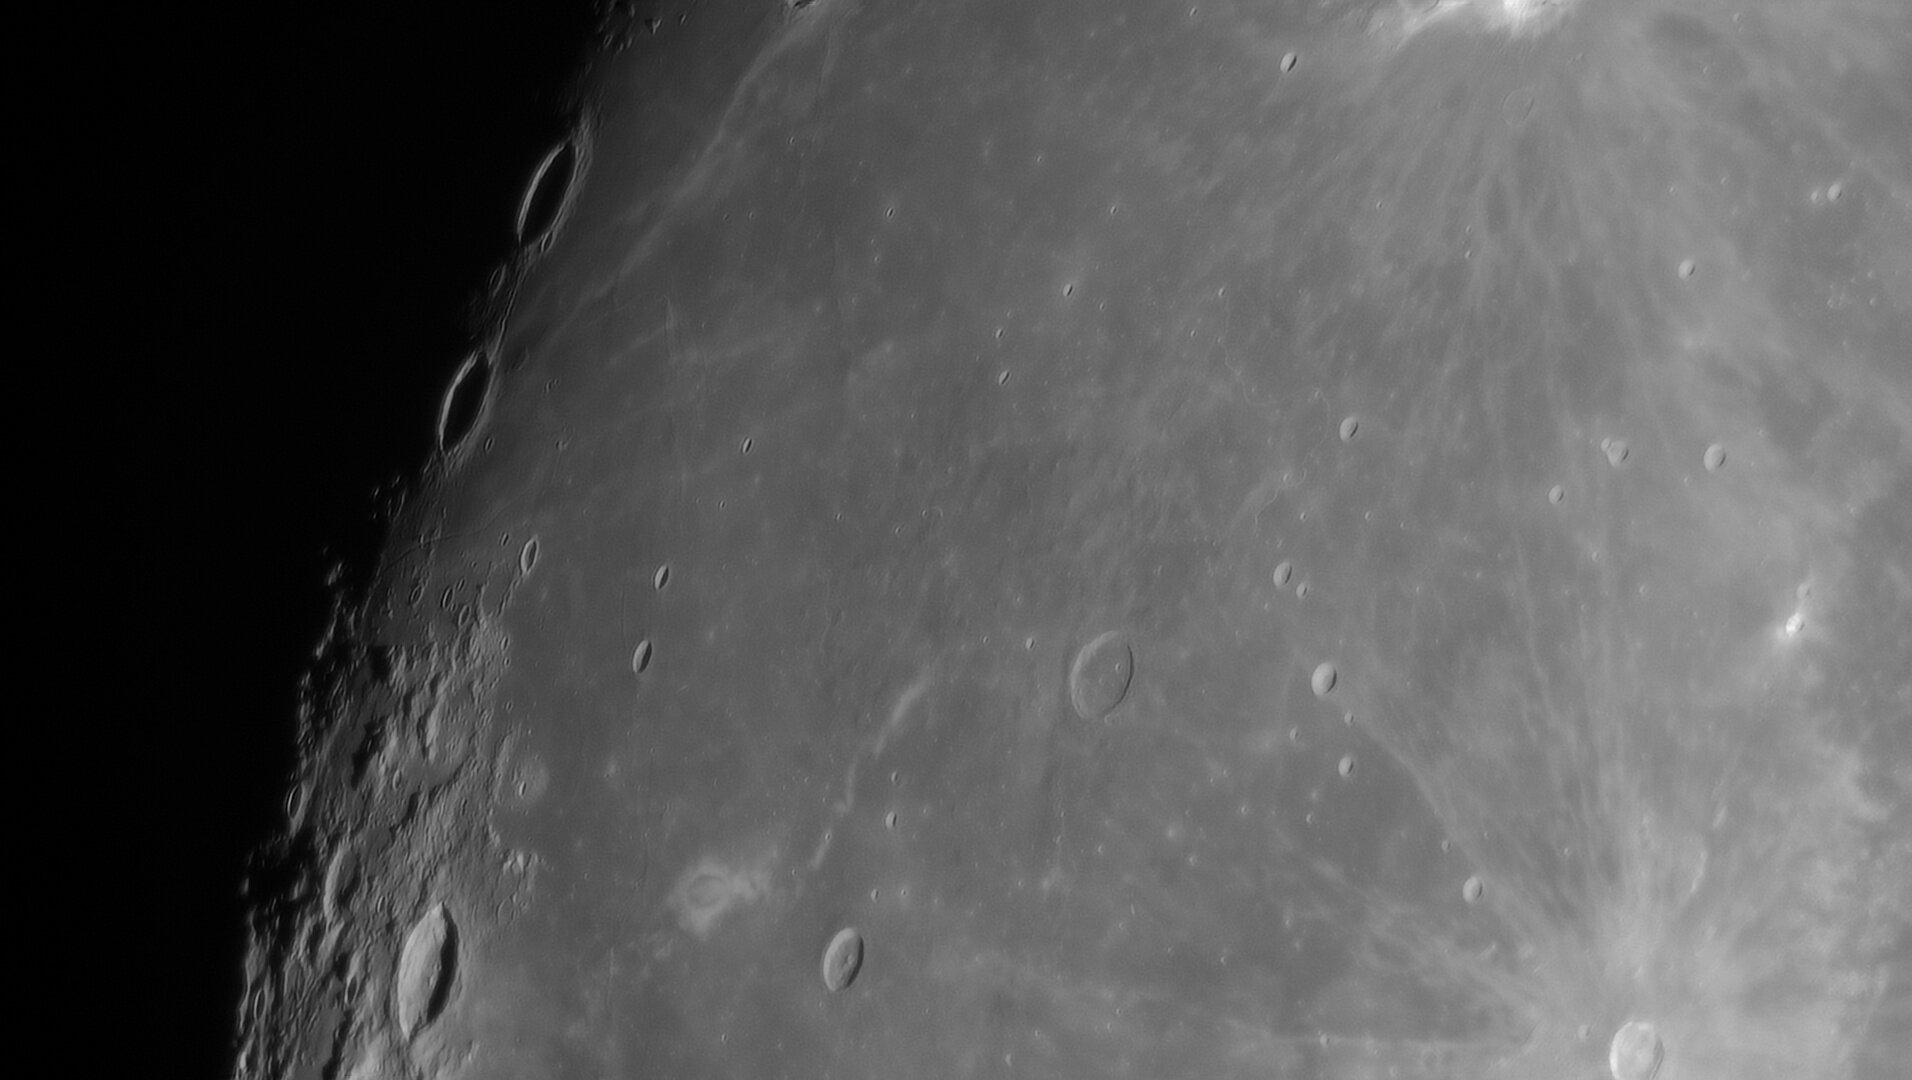 1259412476_Moon_214226_281120_ZWOASI290MM_IR_590nm_AS_P40_lapl6_ap1653.jpg.a09fe1c24b810c9ca300076bad73fb6f.jpg.4e0dd2589bcdb707420067f38f9f3cff.jpg